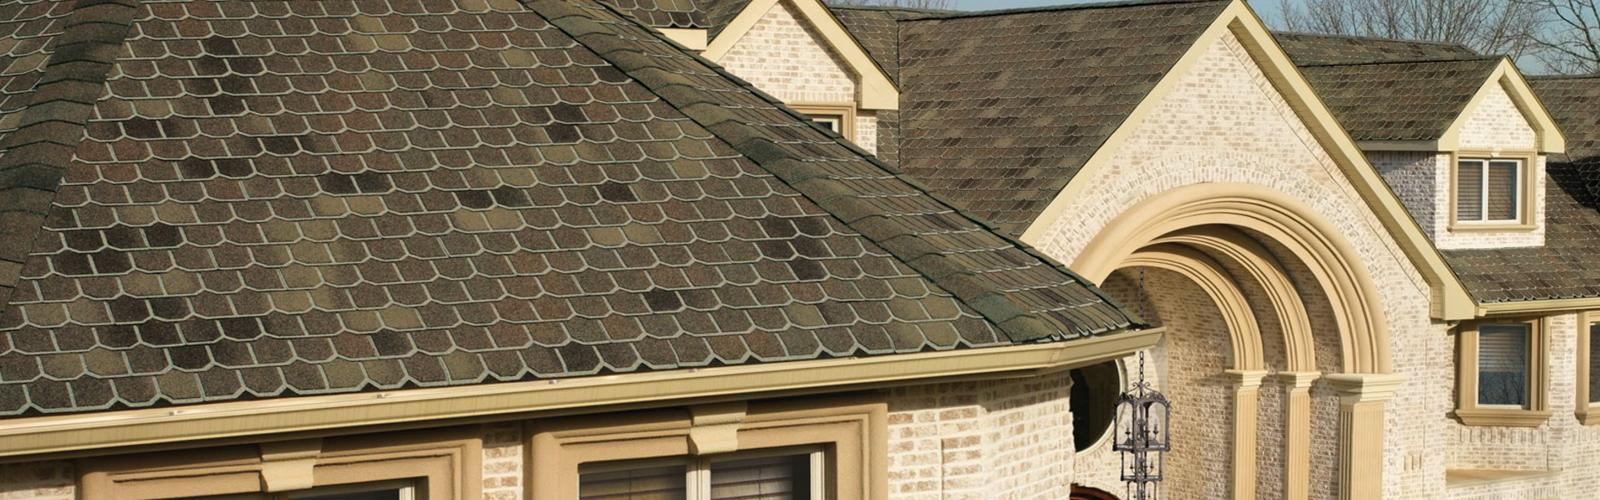 Home West Coast Roofing